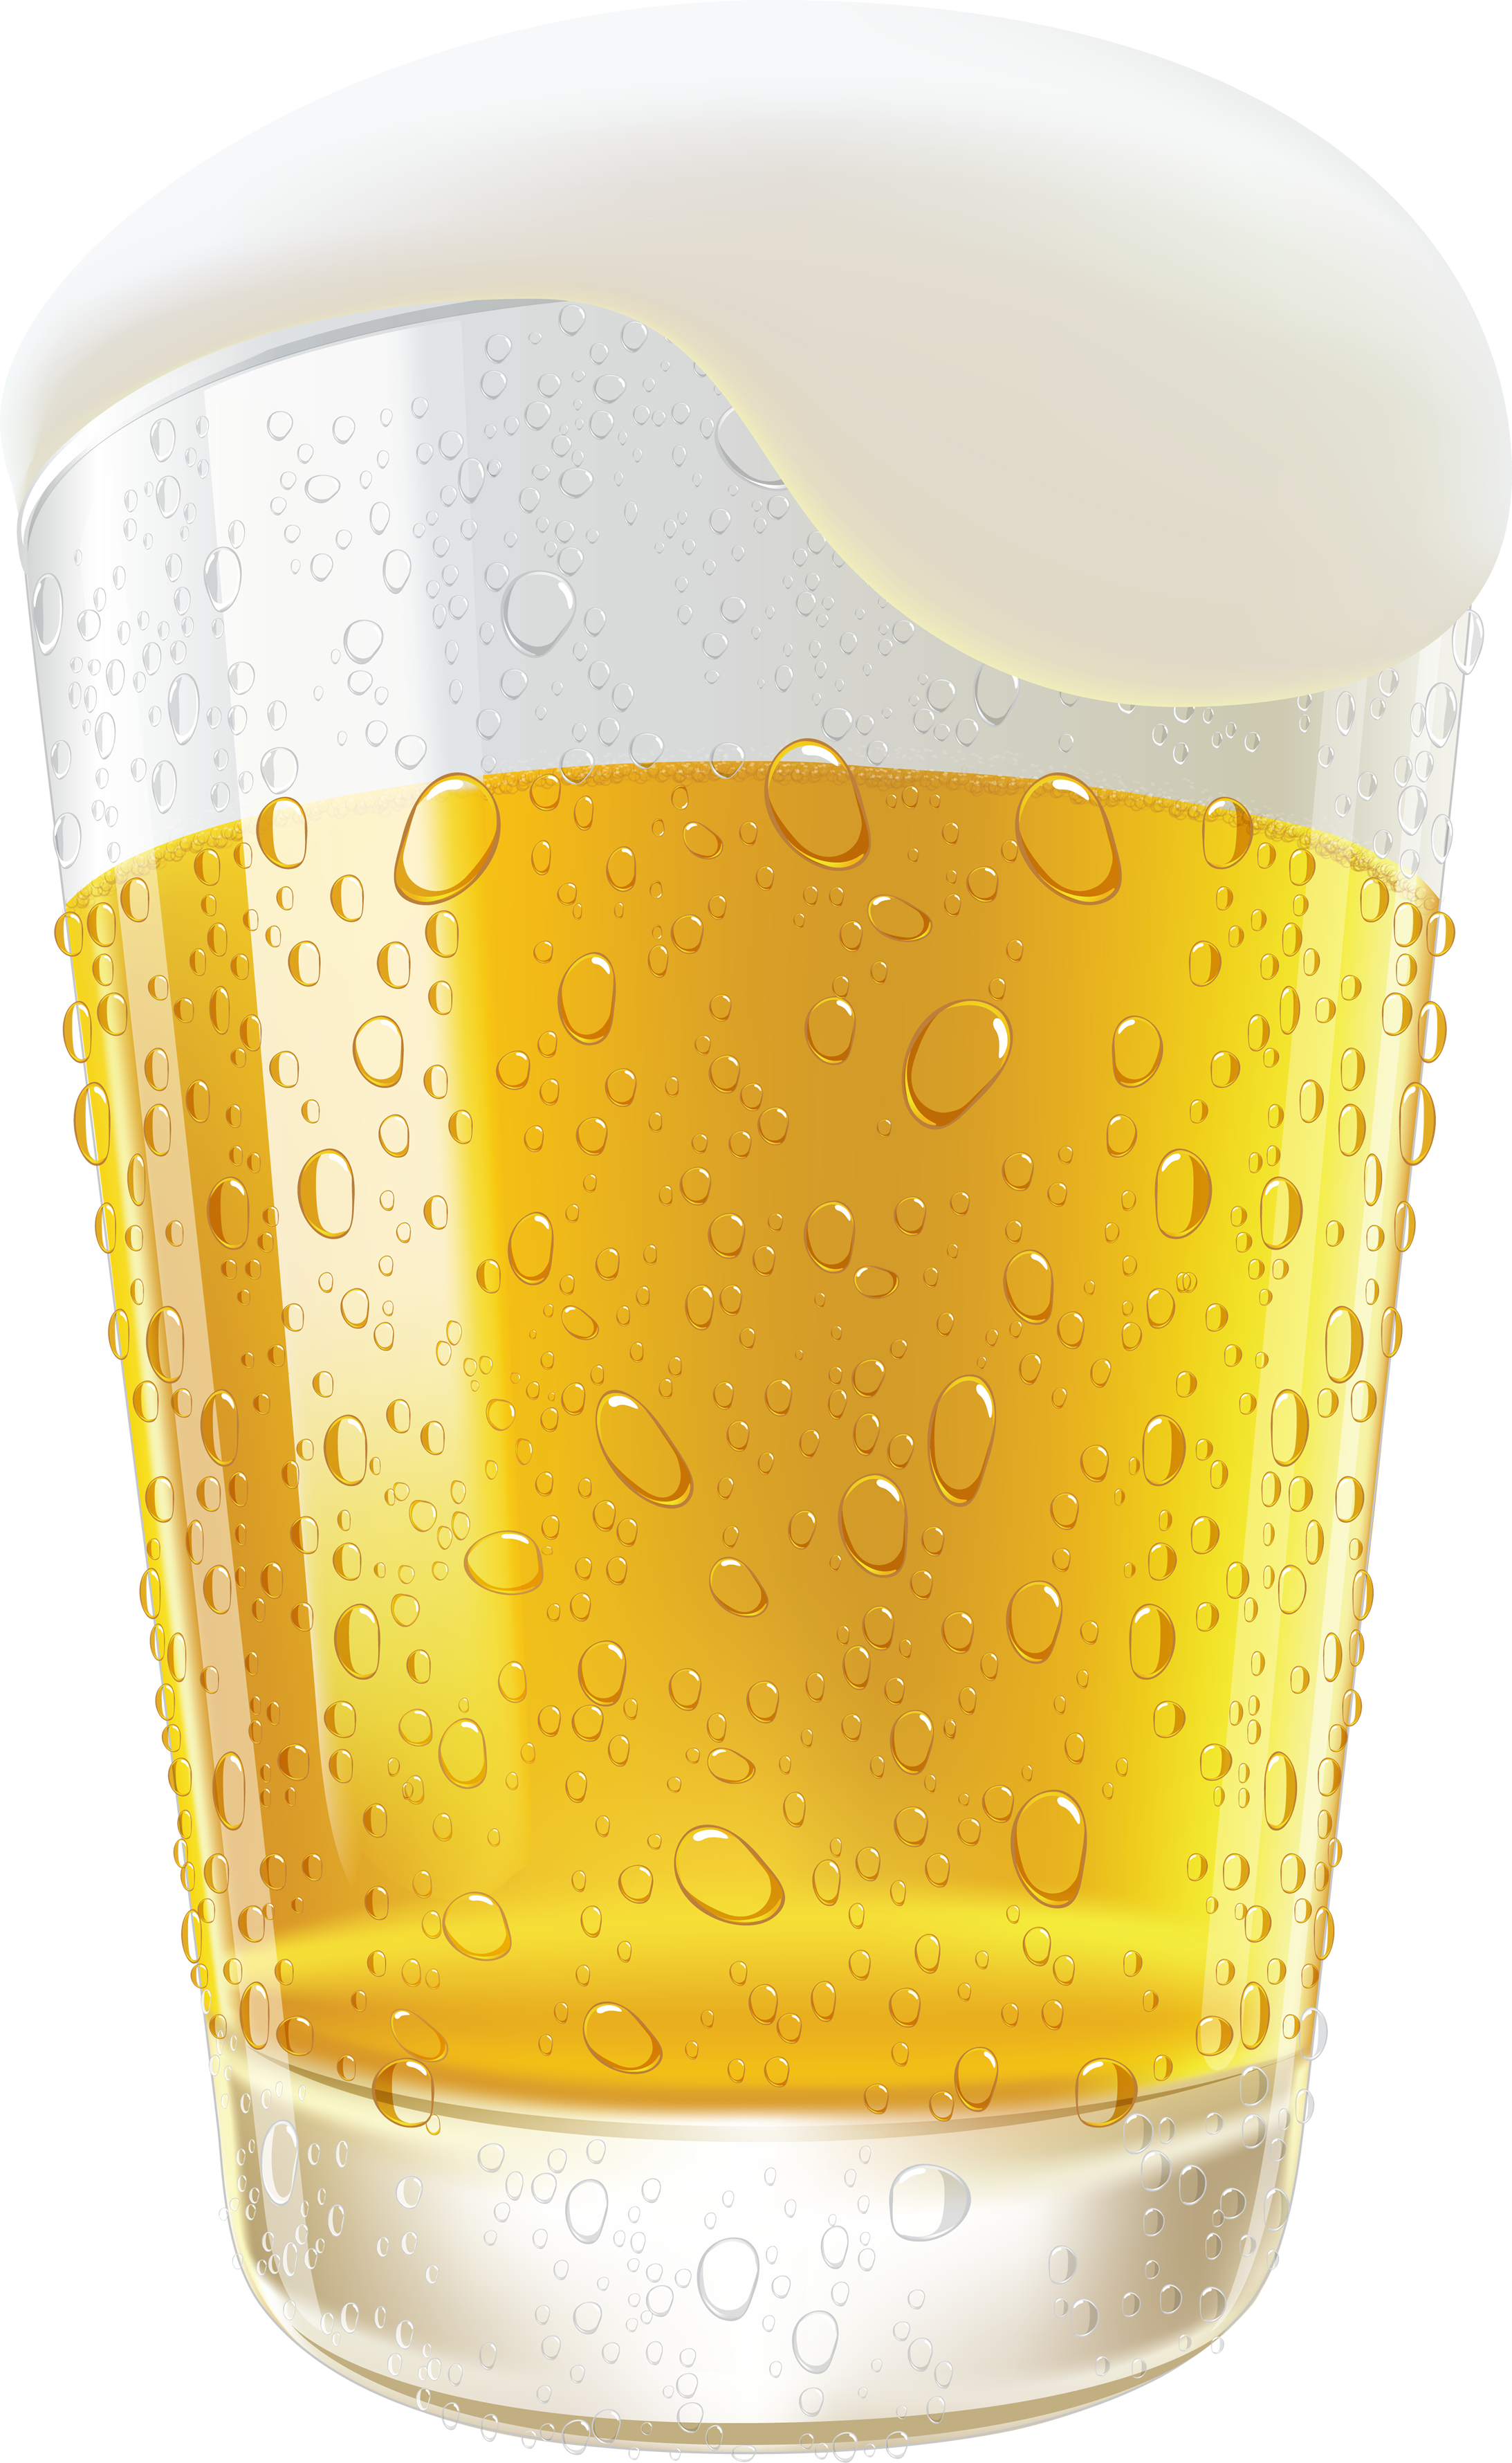 clip download Beard clipart glass. Of beer twelve isolated